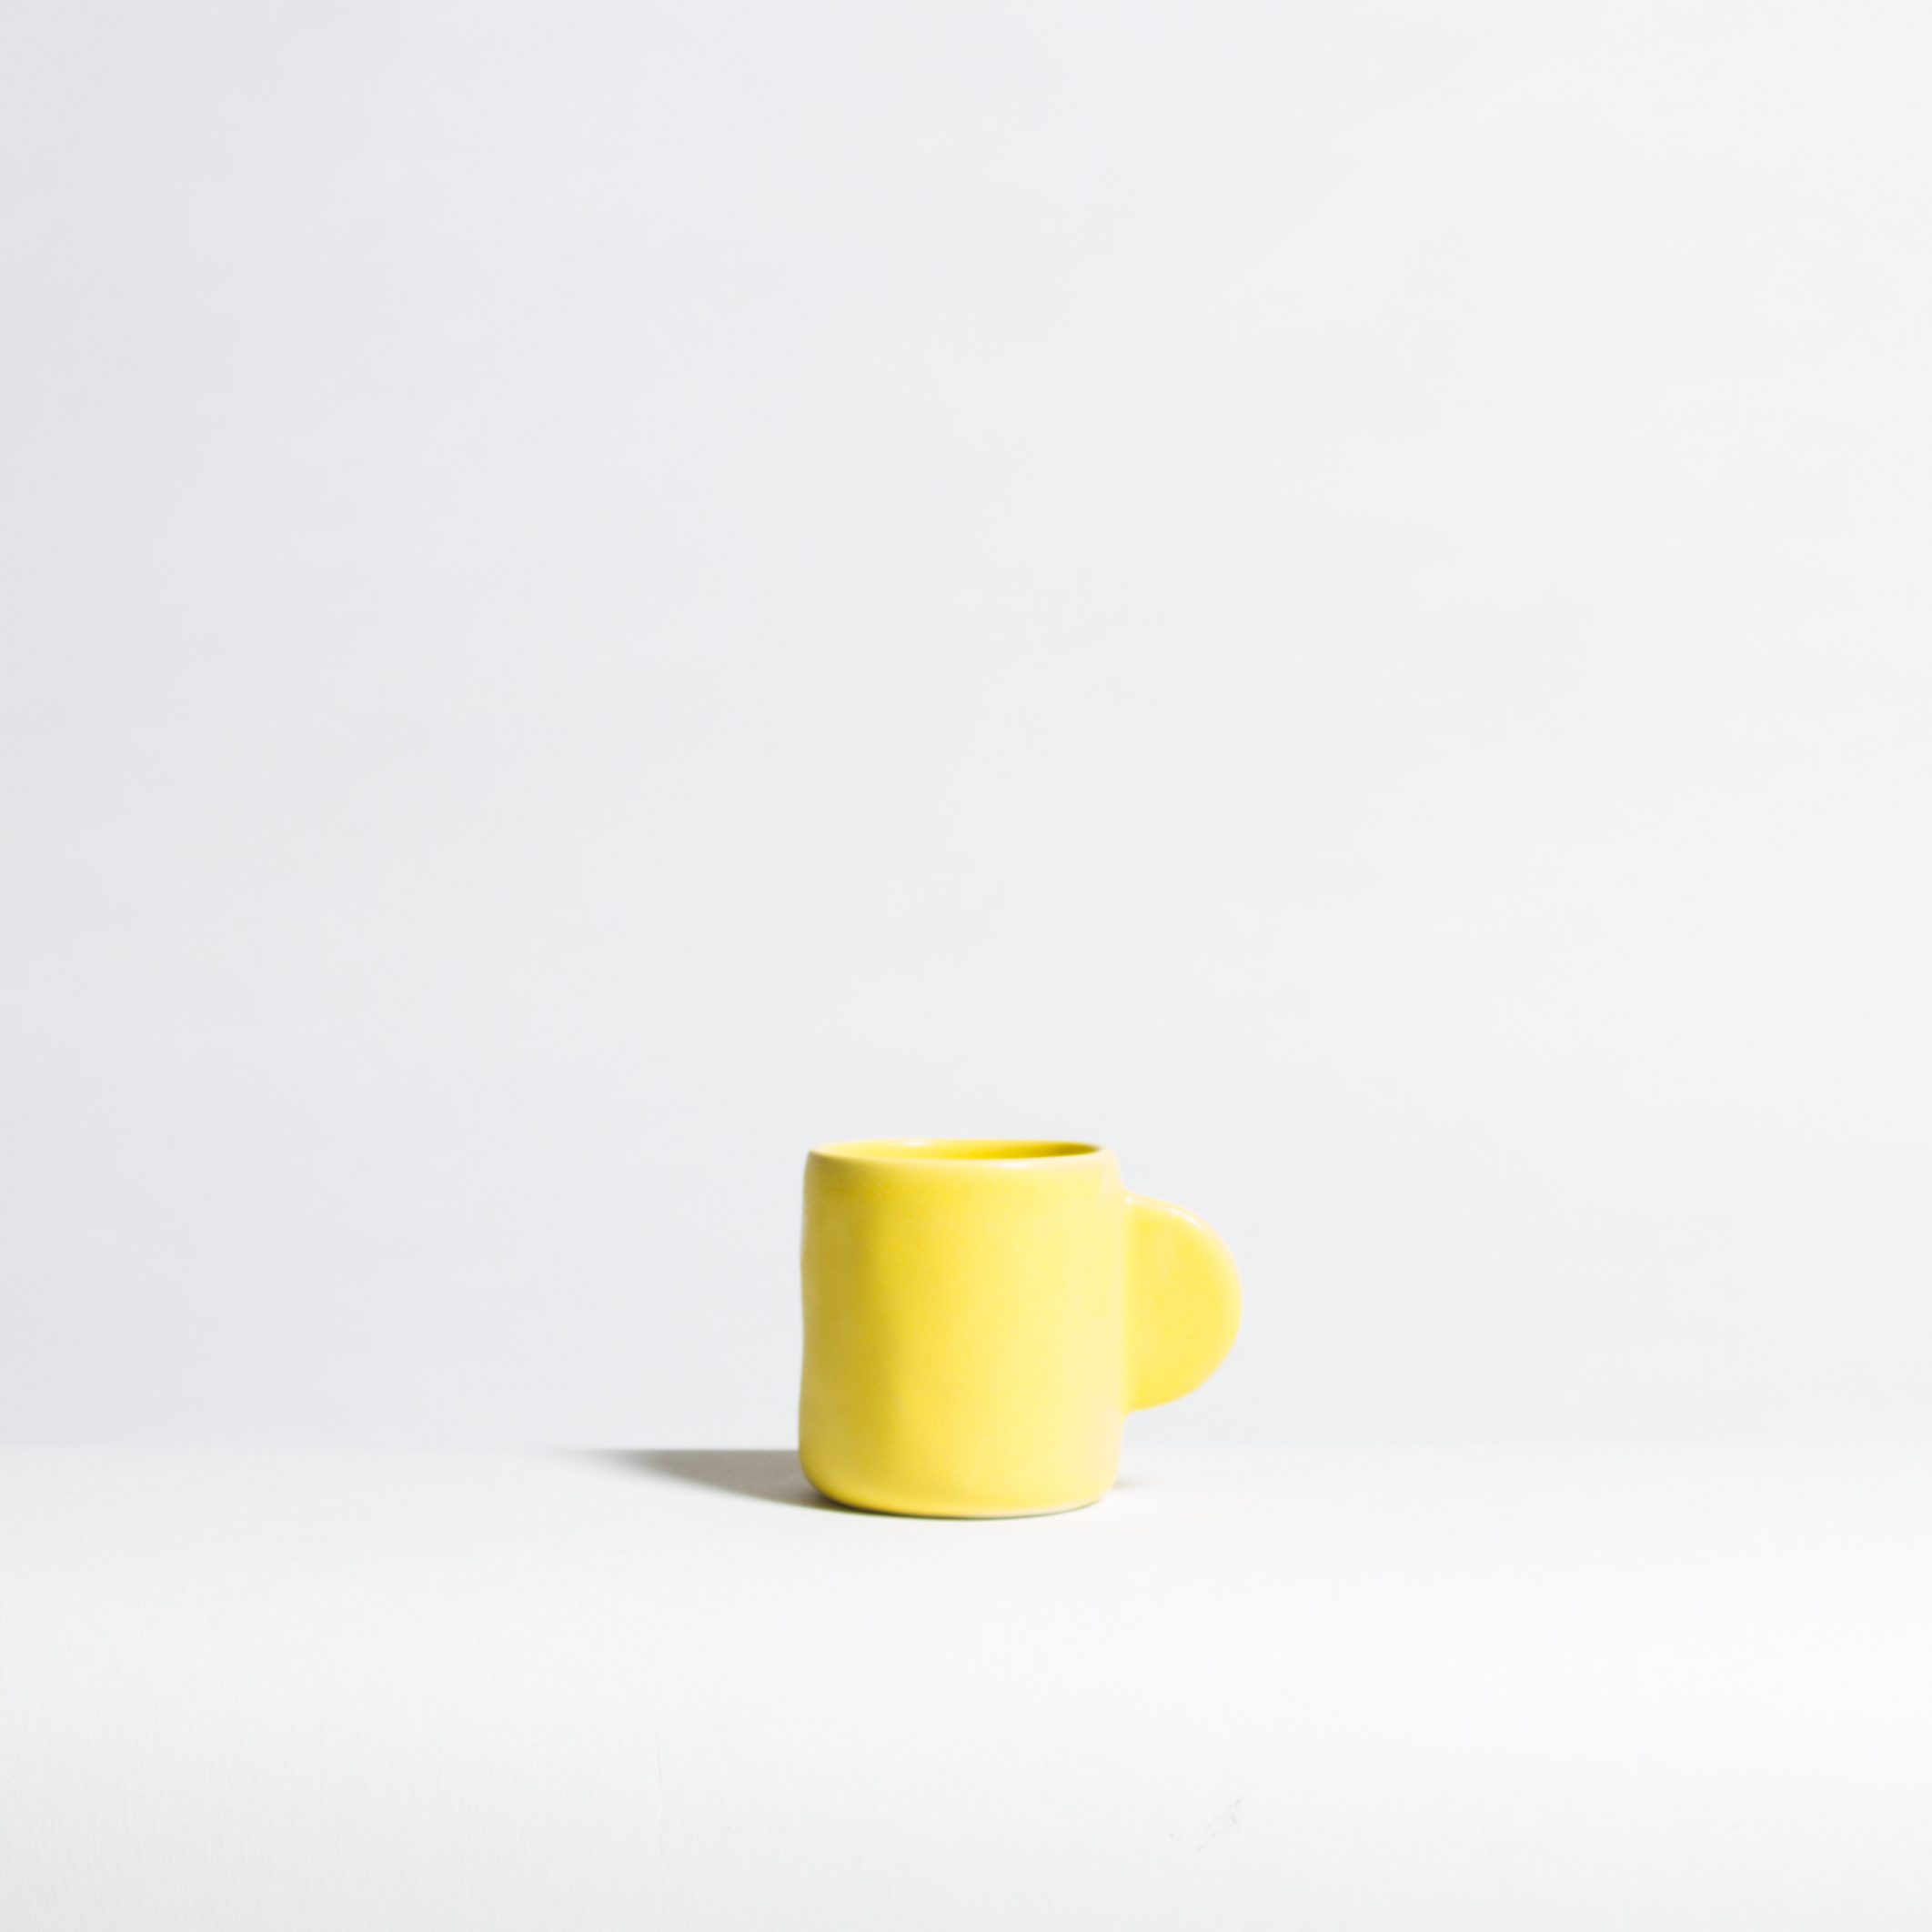 lemon espresso cup felt and fat indulge entertaining in the pursuit